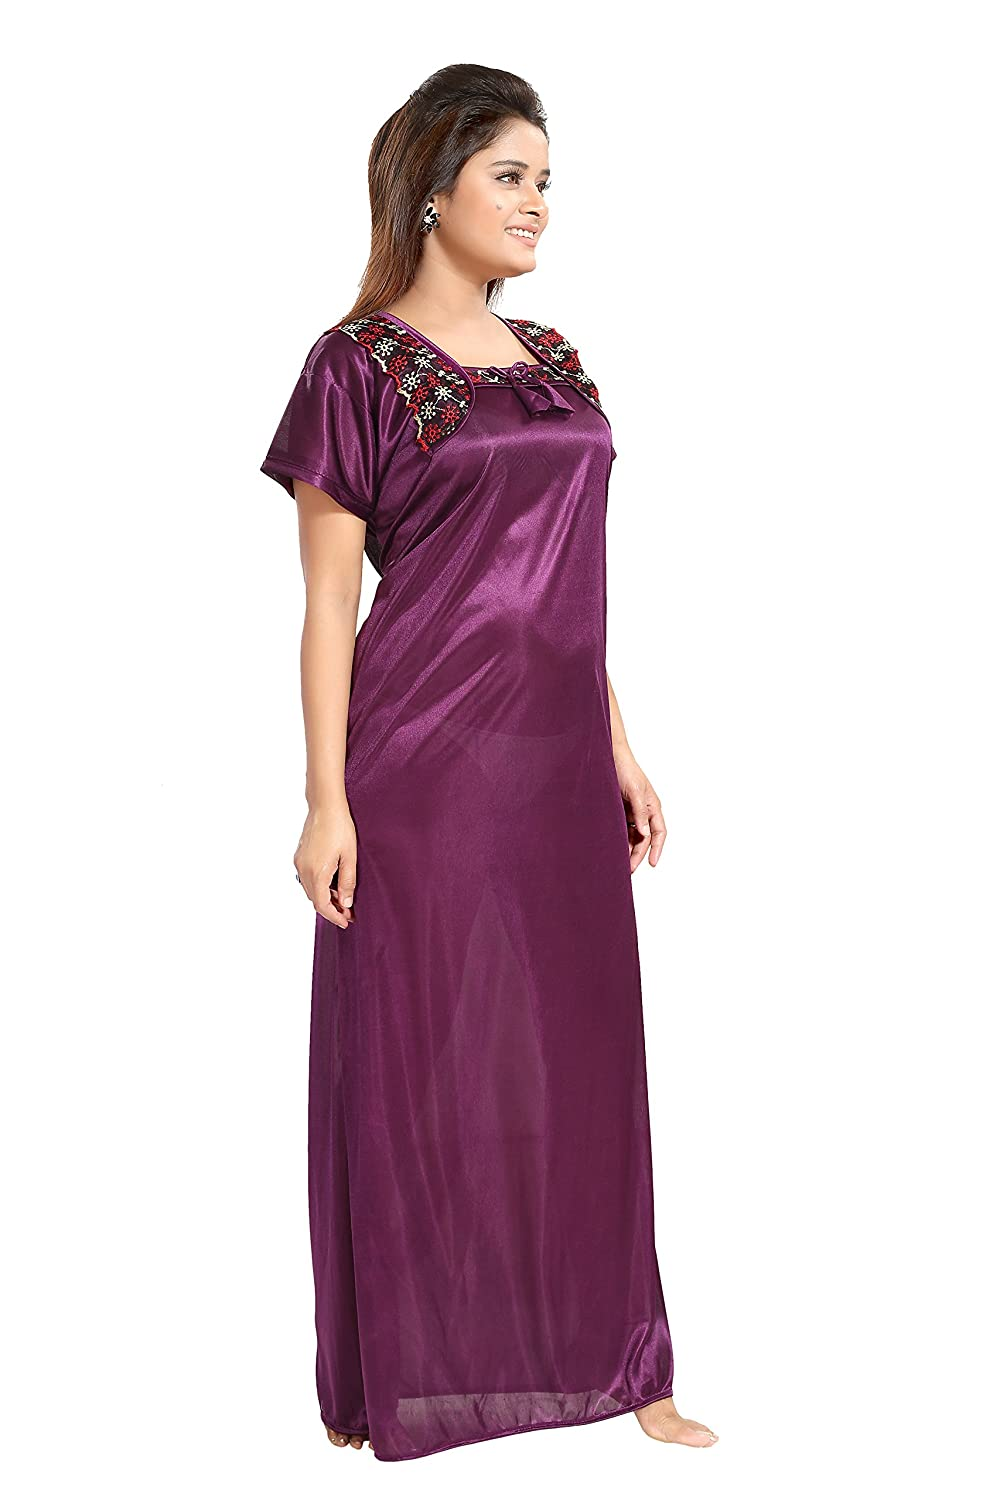 6a877ec296 TUCUTE Women Satin Night Gown Nightwear   Nighty (Wine) (Free Size) with  Lace Work D.No.1536  Amazon.in  Clothing   Accessories